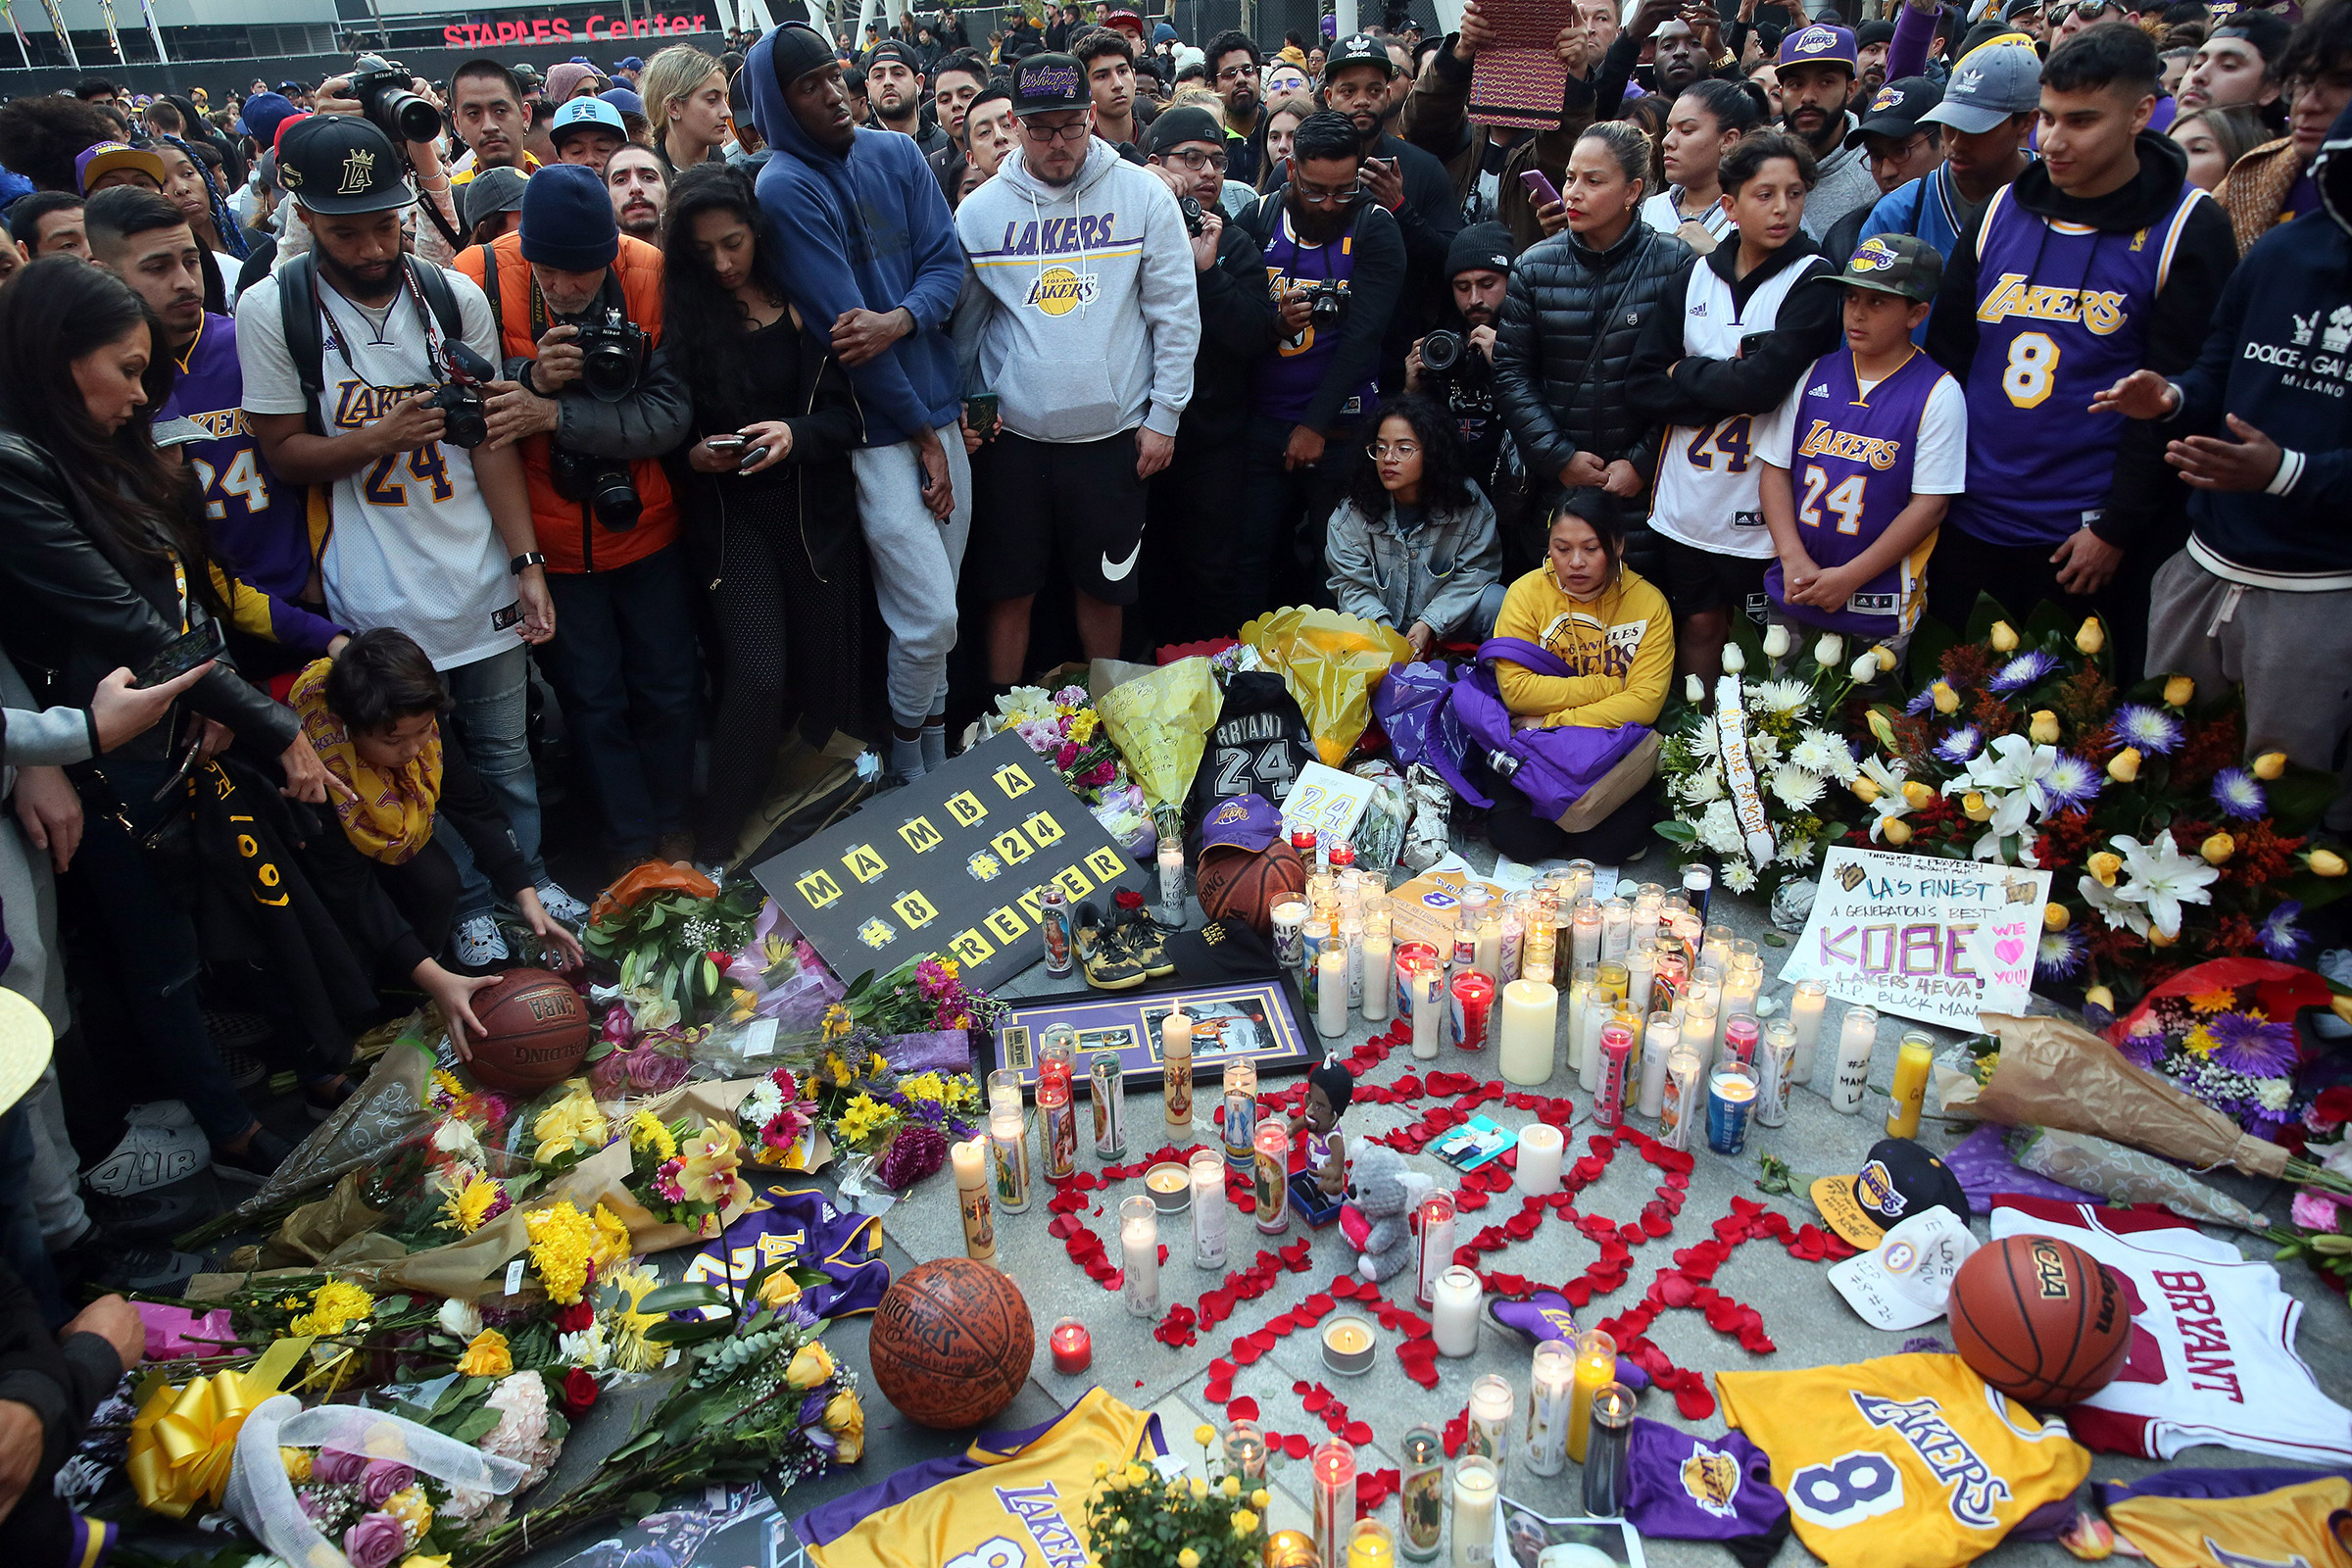 Fans place flowers, candles and memorabilia  during a vigil for late Los Angeles Lakers guard Kobe Bryant, at the LA Live entertainment complex across the street from the Staples Center in Los Angeles on Jan. 26, 2020.